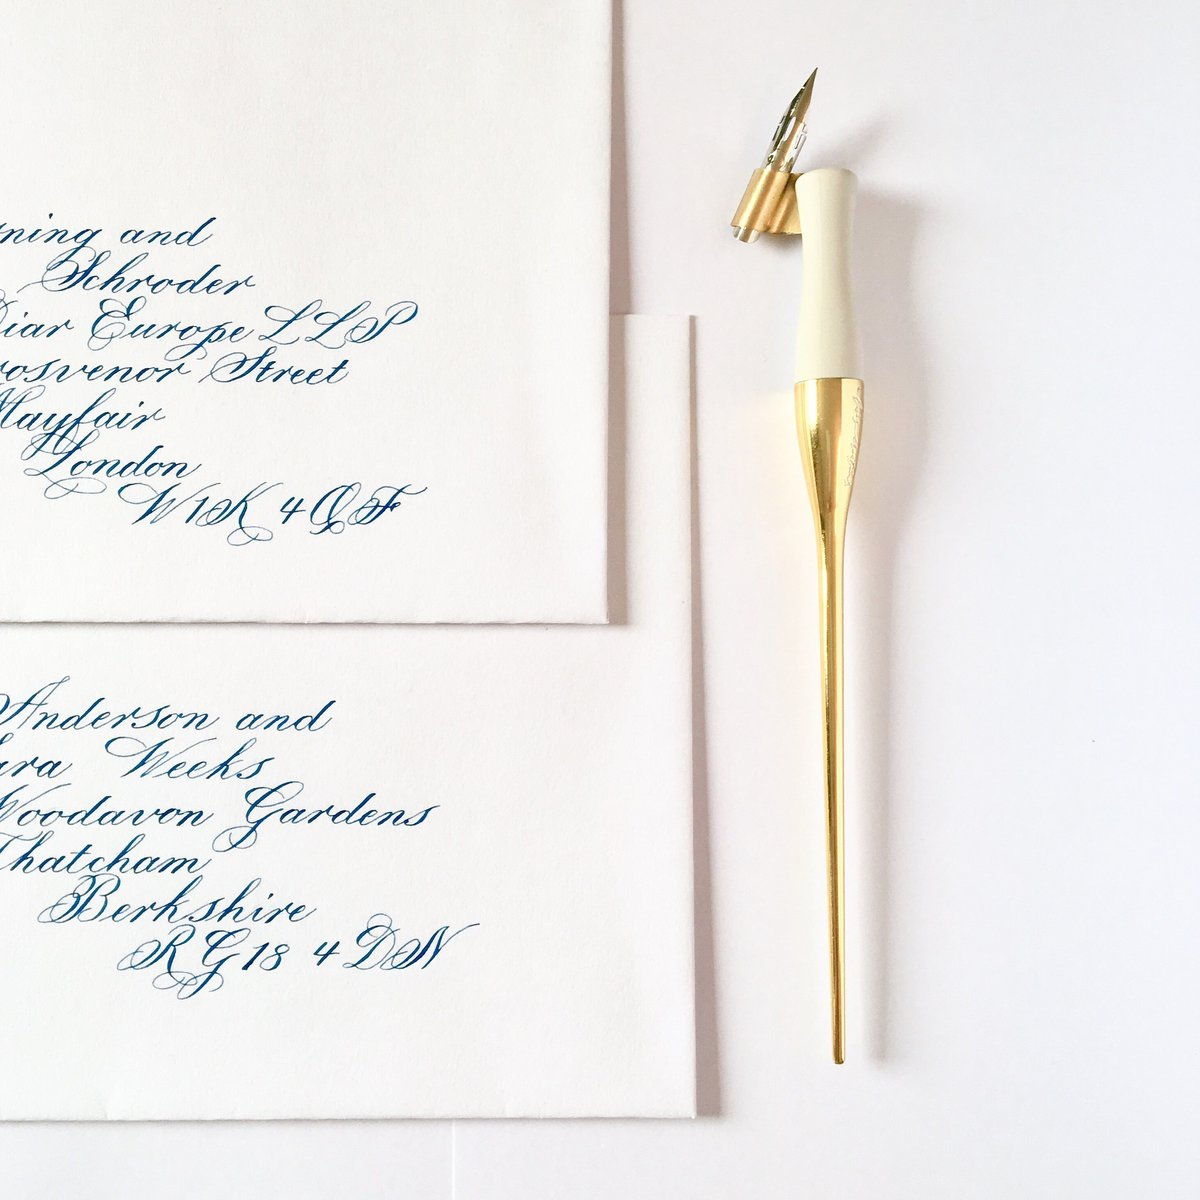 Royal Ascot Invitation Envelopes | Jenni Liandu Calligraphy